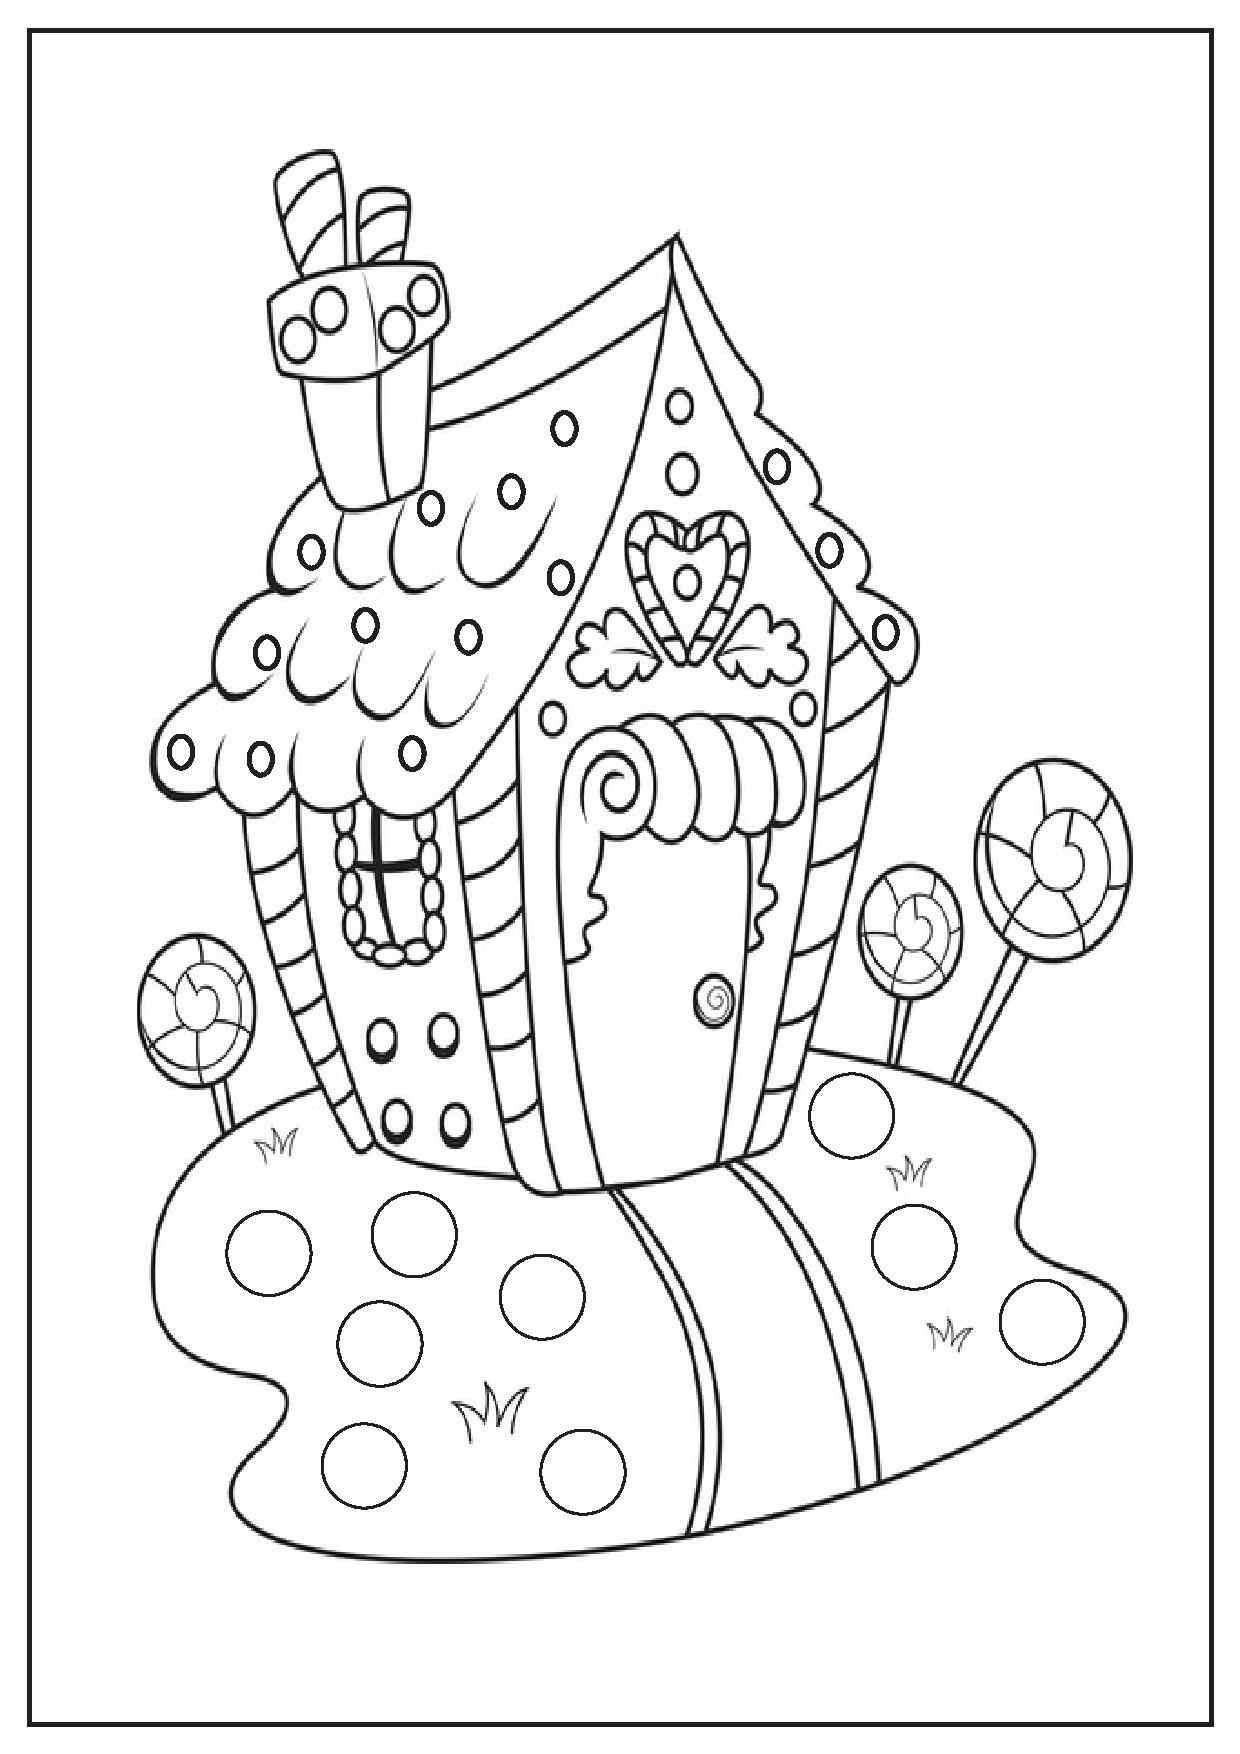 Adult Beauty Free Printable Christmas Coloring Pages For Kids Images cute christmas coloring pages for kids printable 1000 images about templates on pinterest and navidad free coloring